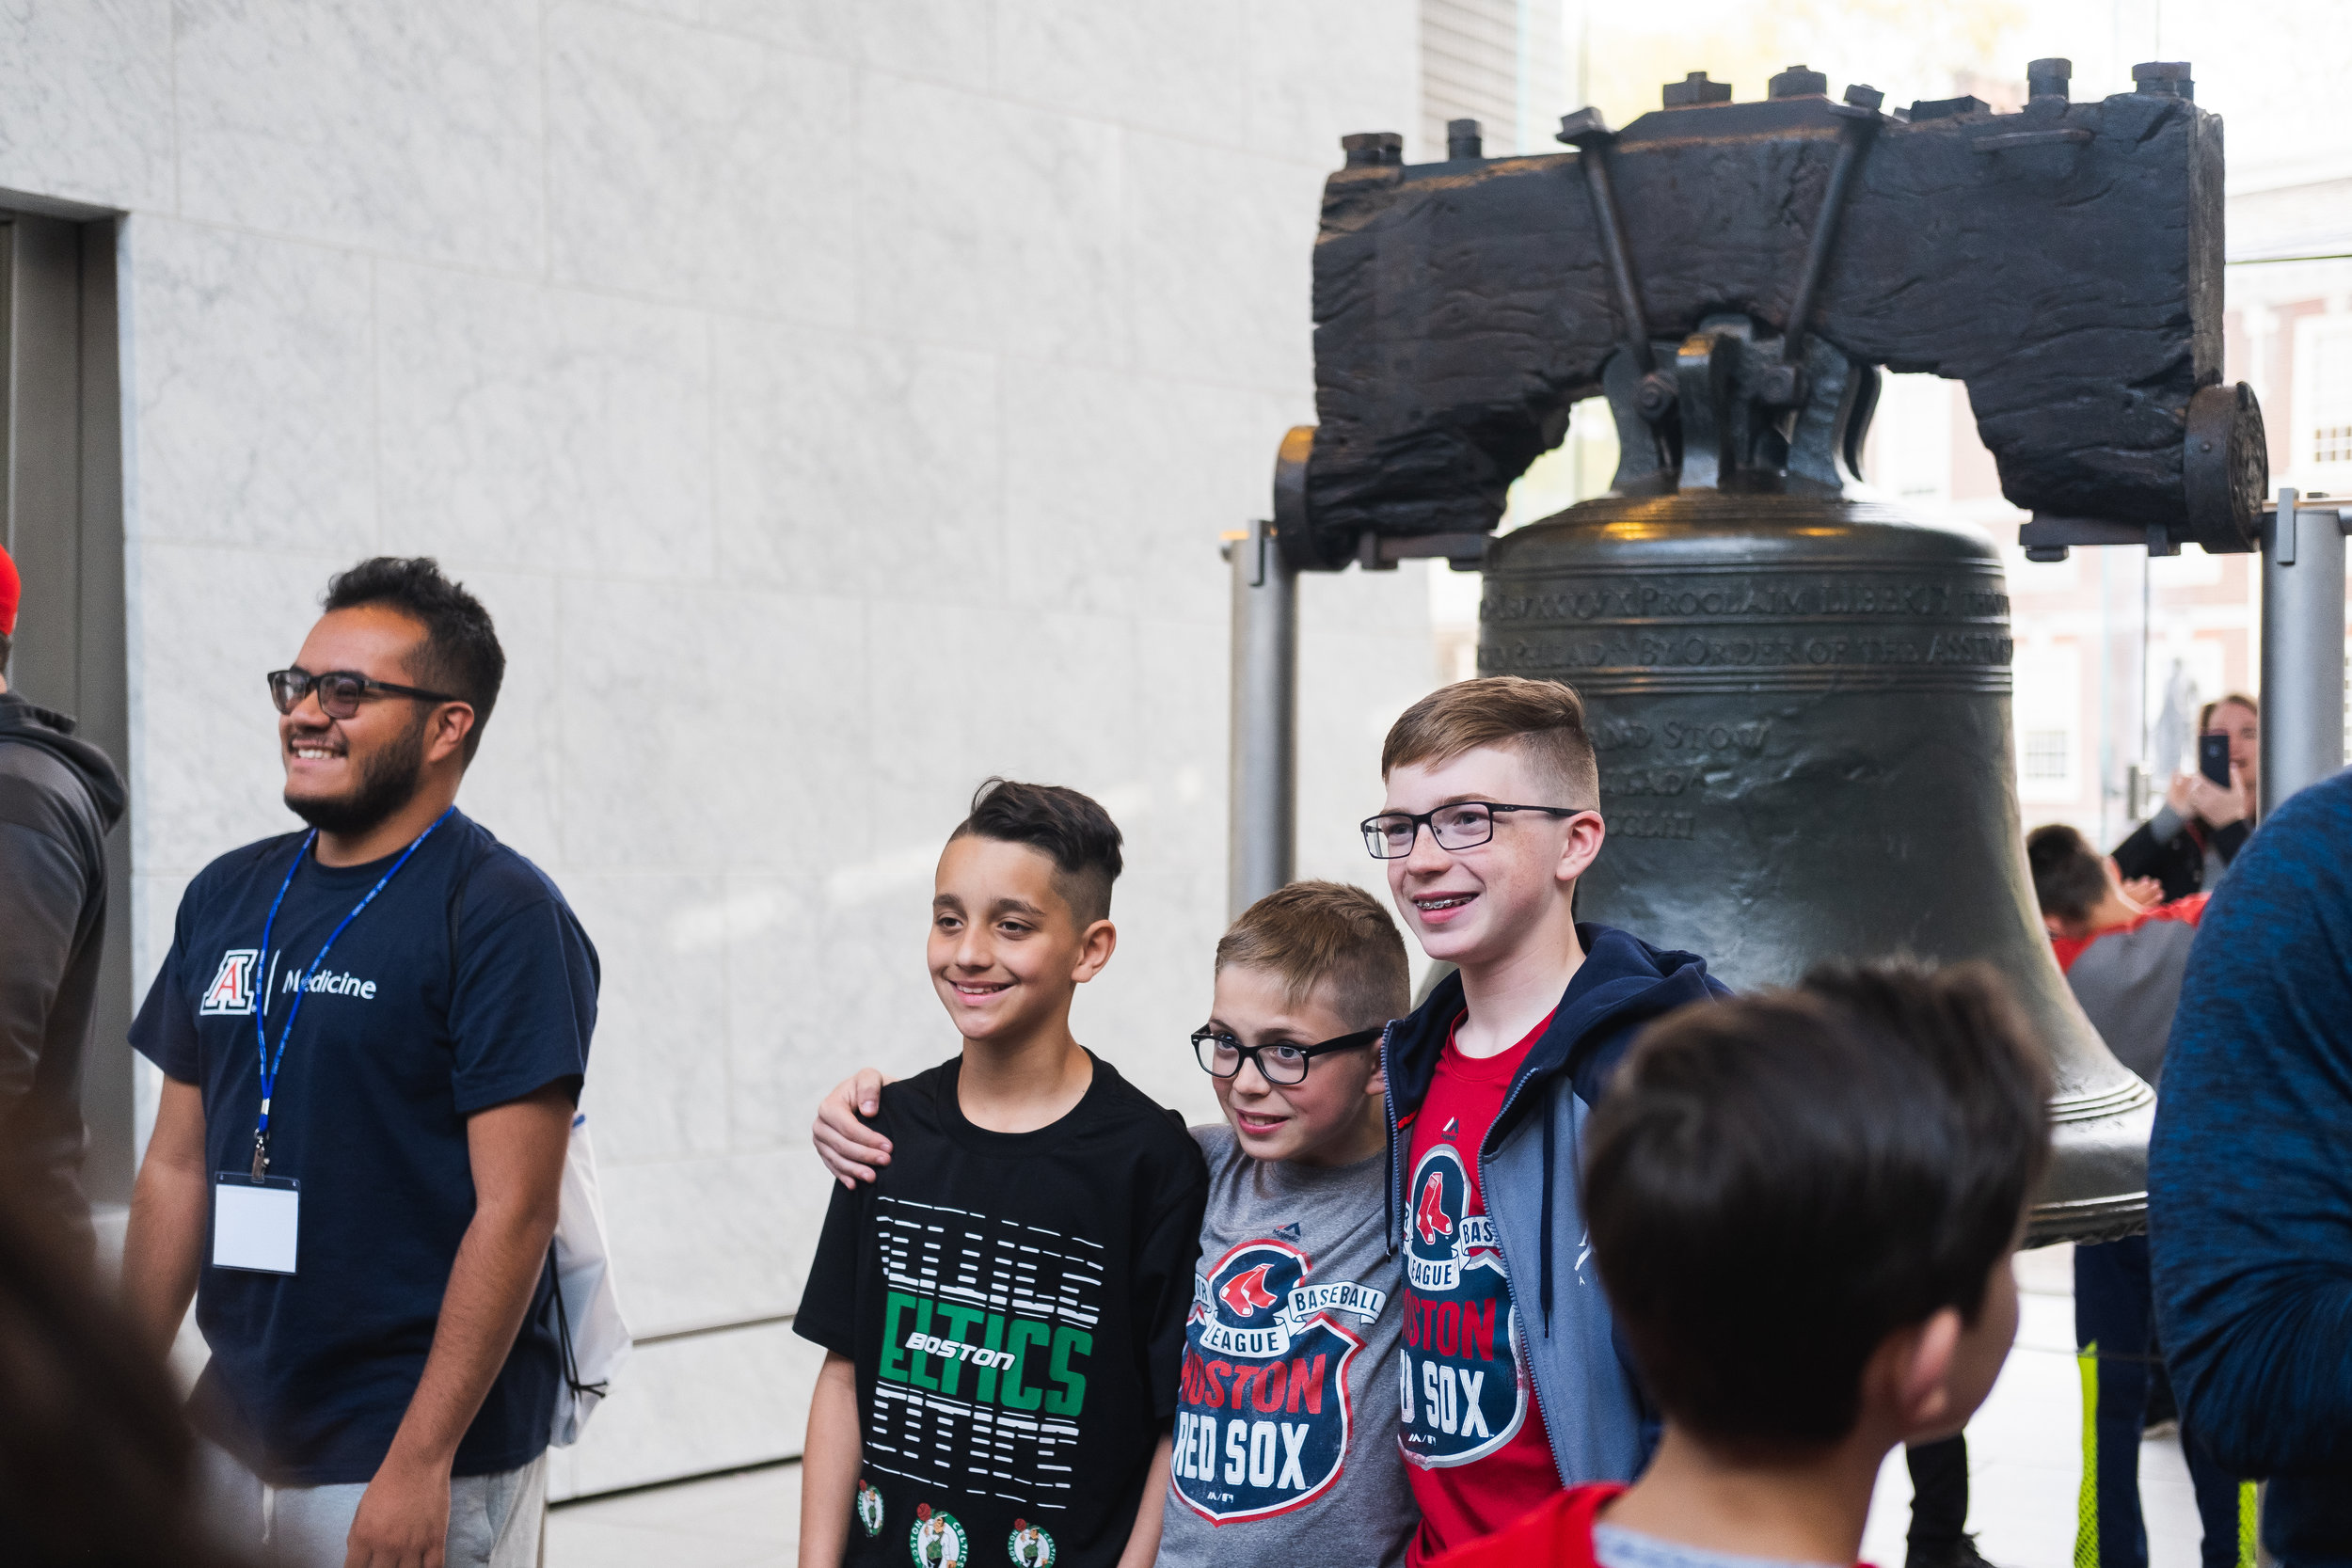 2019_LIBERTY BELL_THE PHILLY CHECKLIST_FINAL-12.jpg